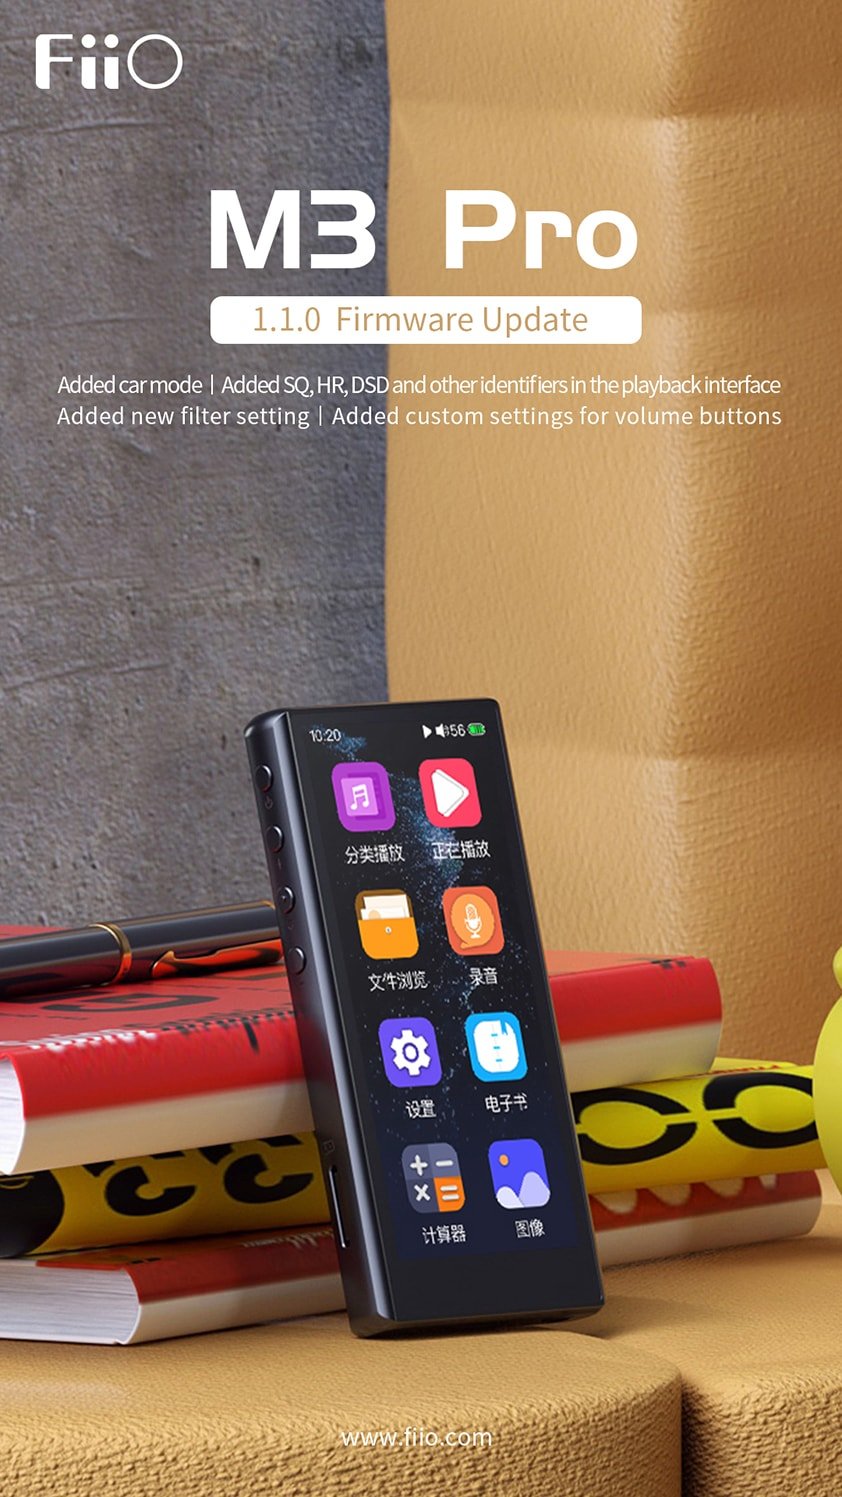 [New firmware] FiiO M3PRO FW1.1.0 is now available!